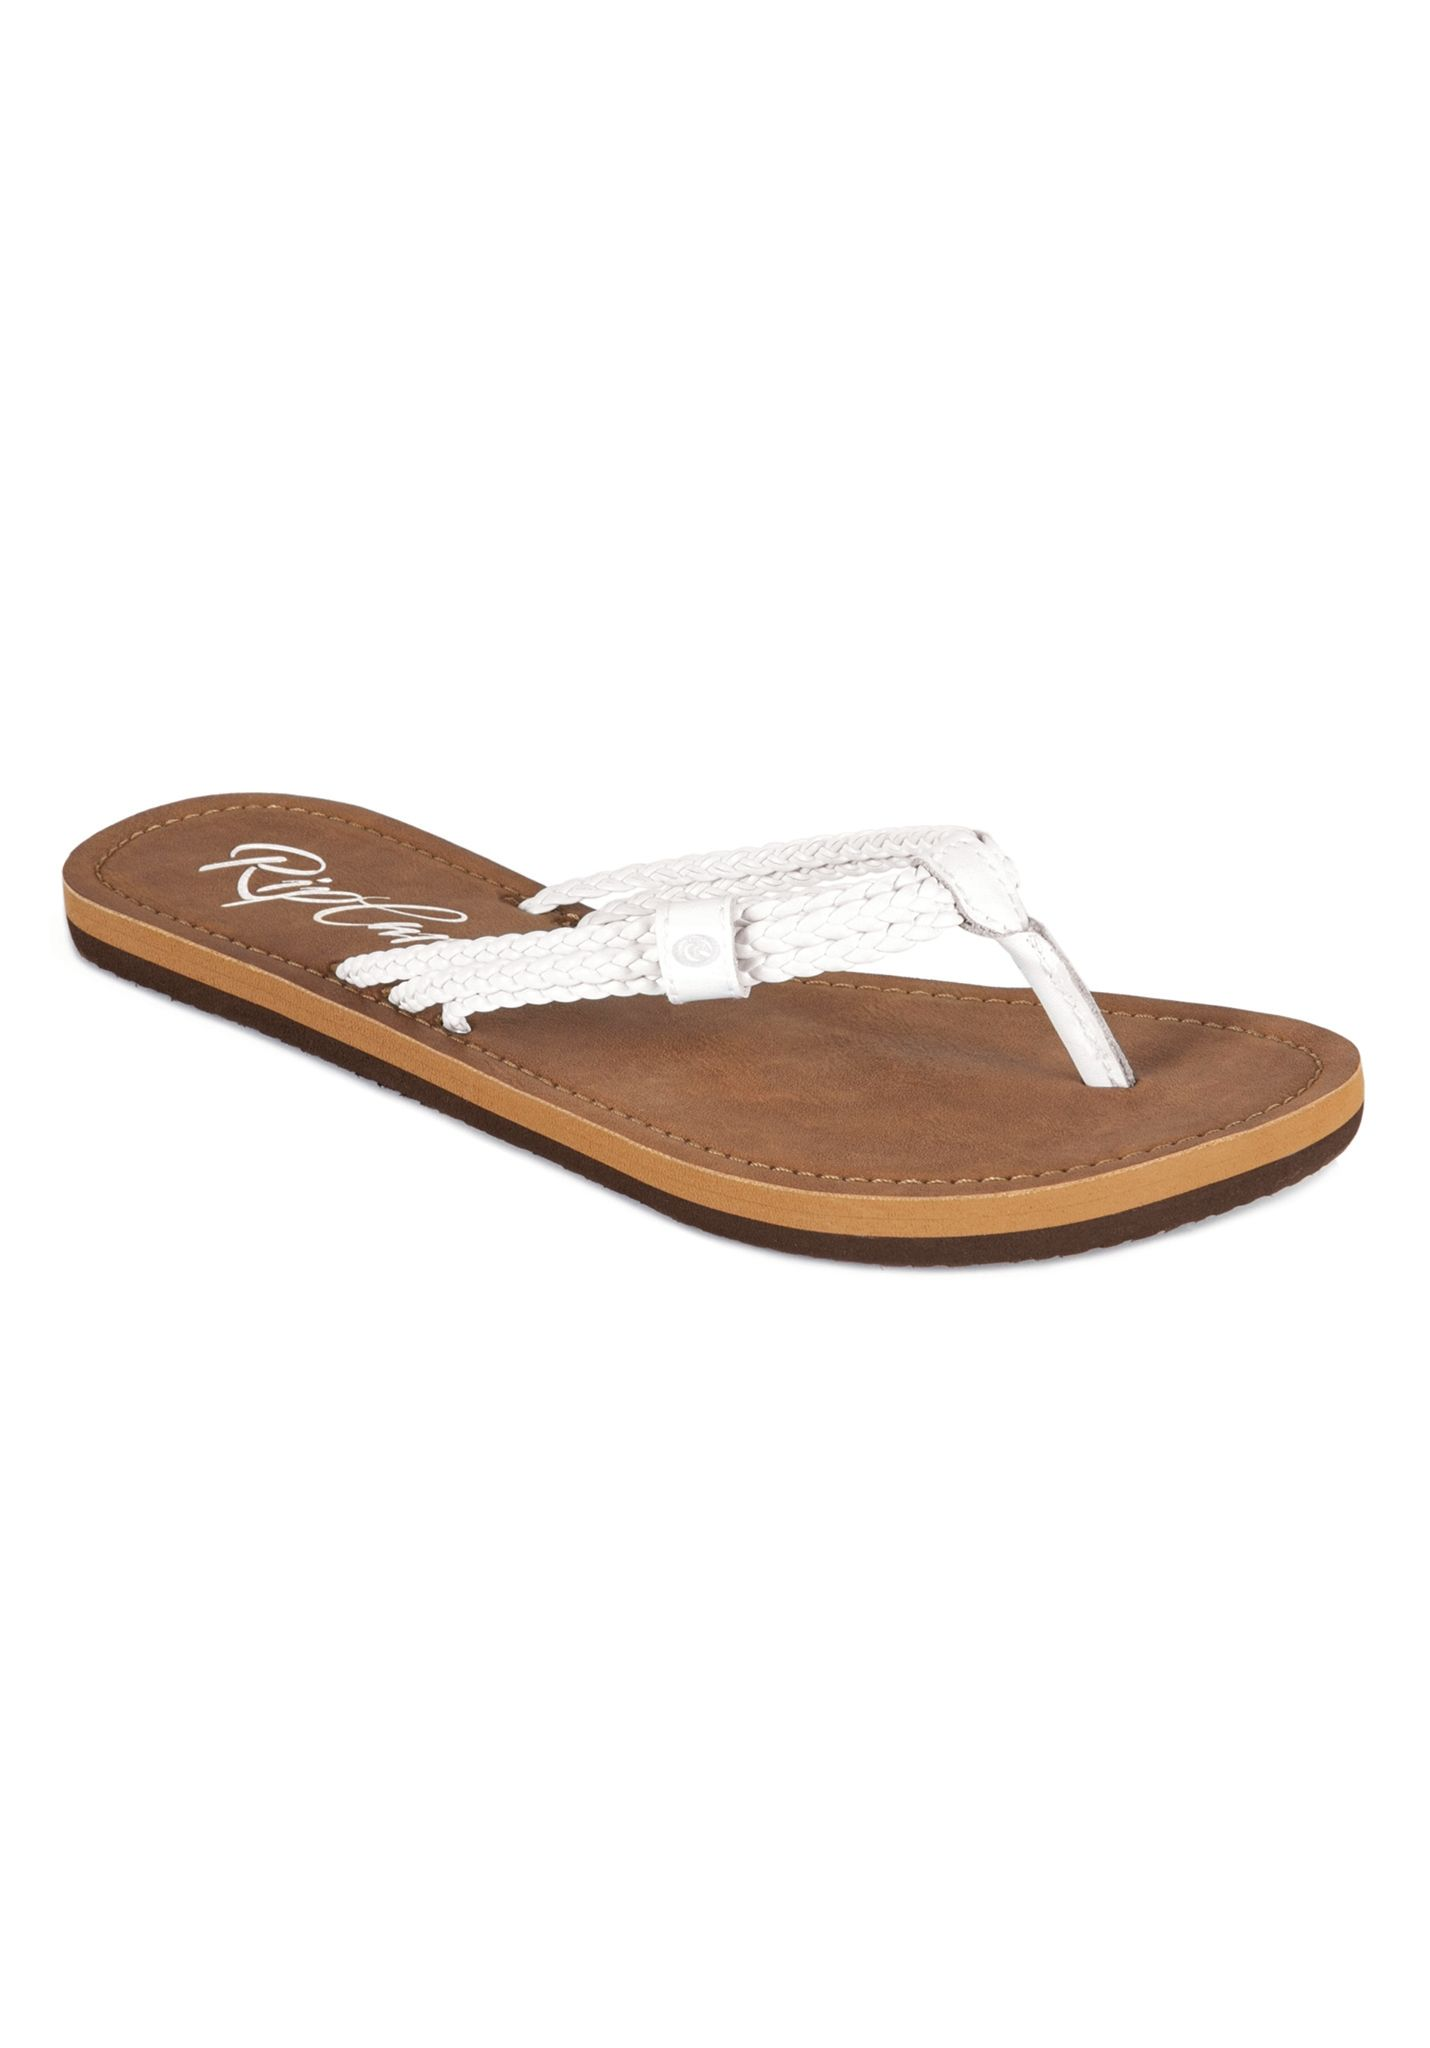 Rip Curl Ivy Sandals for Women White